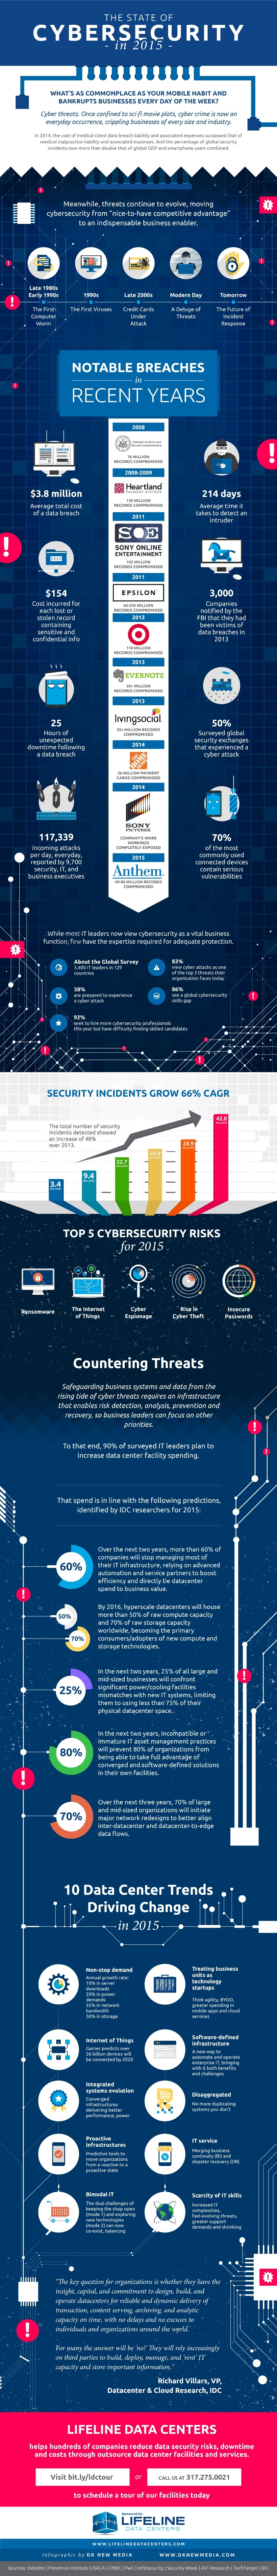 State-of-cybersecurity-2015-infographic